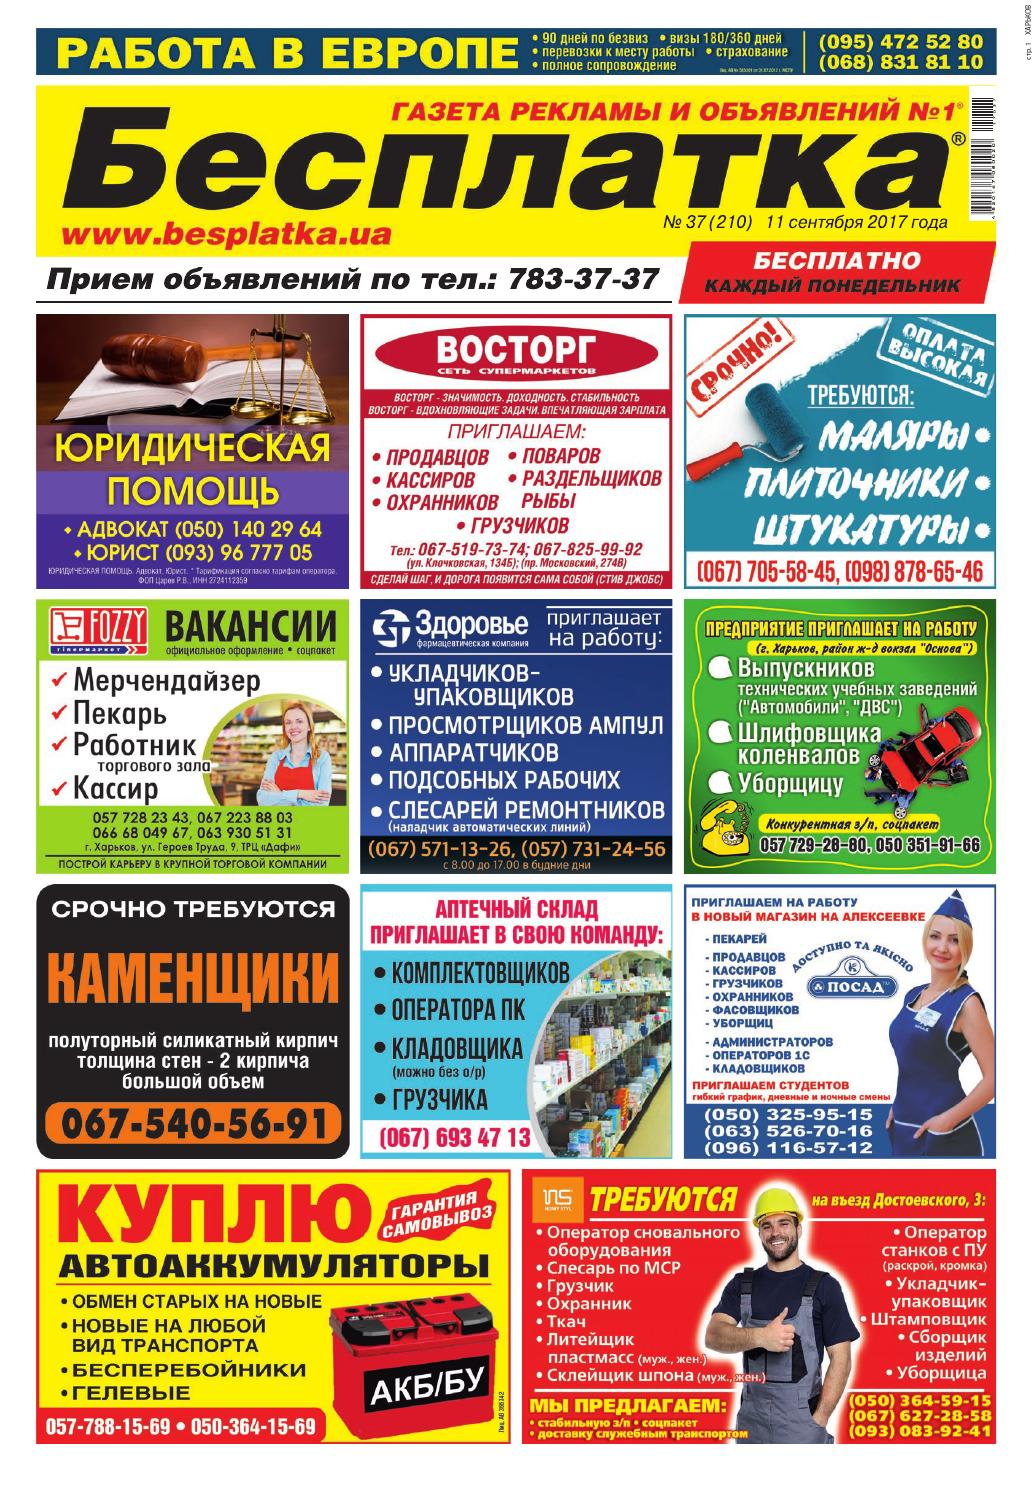 Besplatka  37 Харьков by besplatka ukraine - issuu 50cb13cb15d